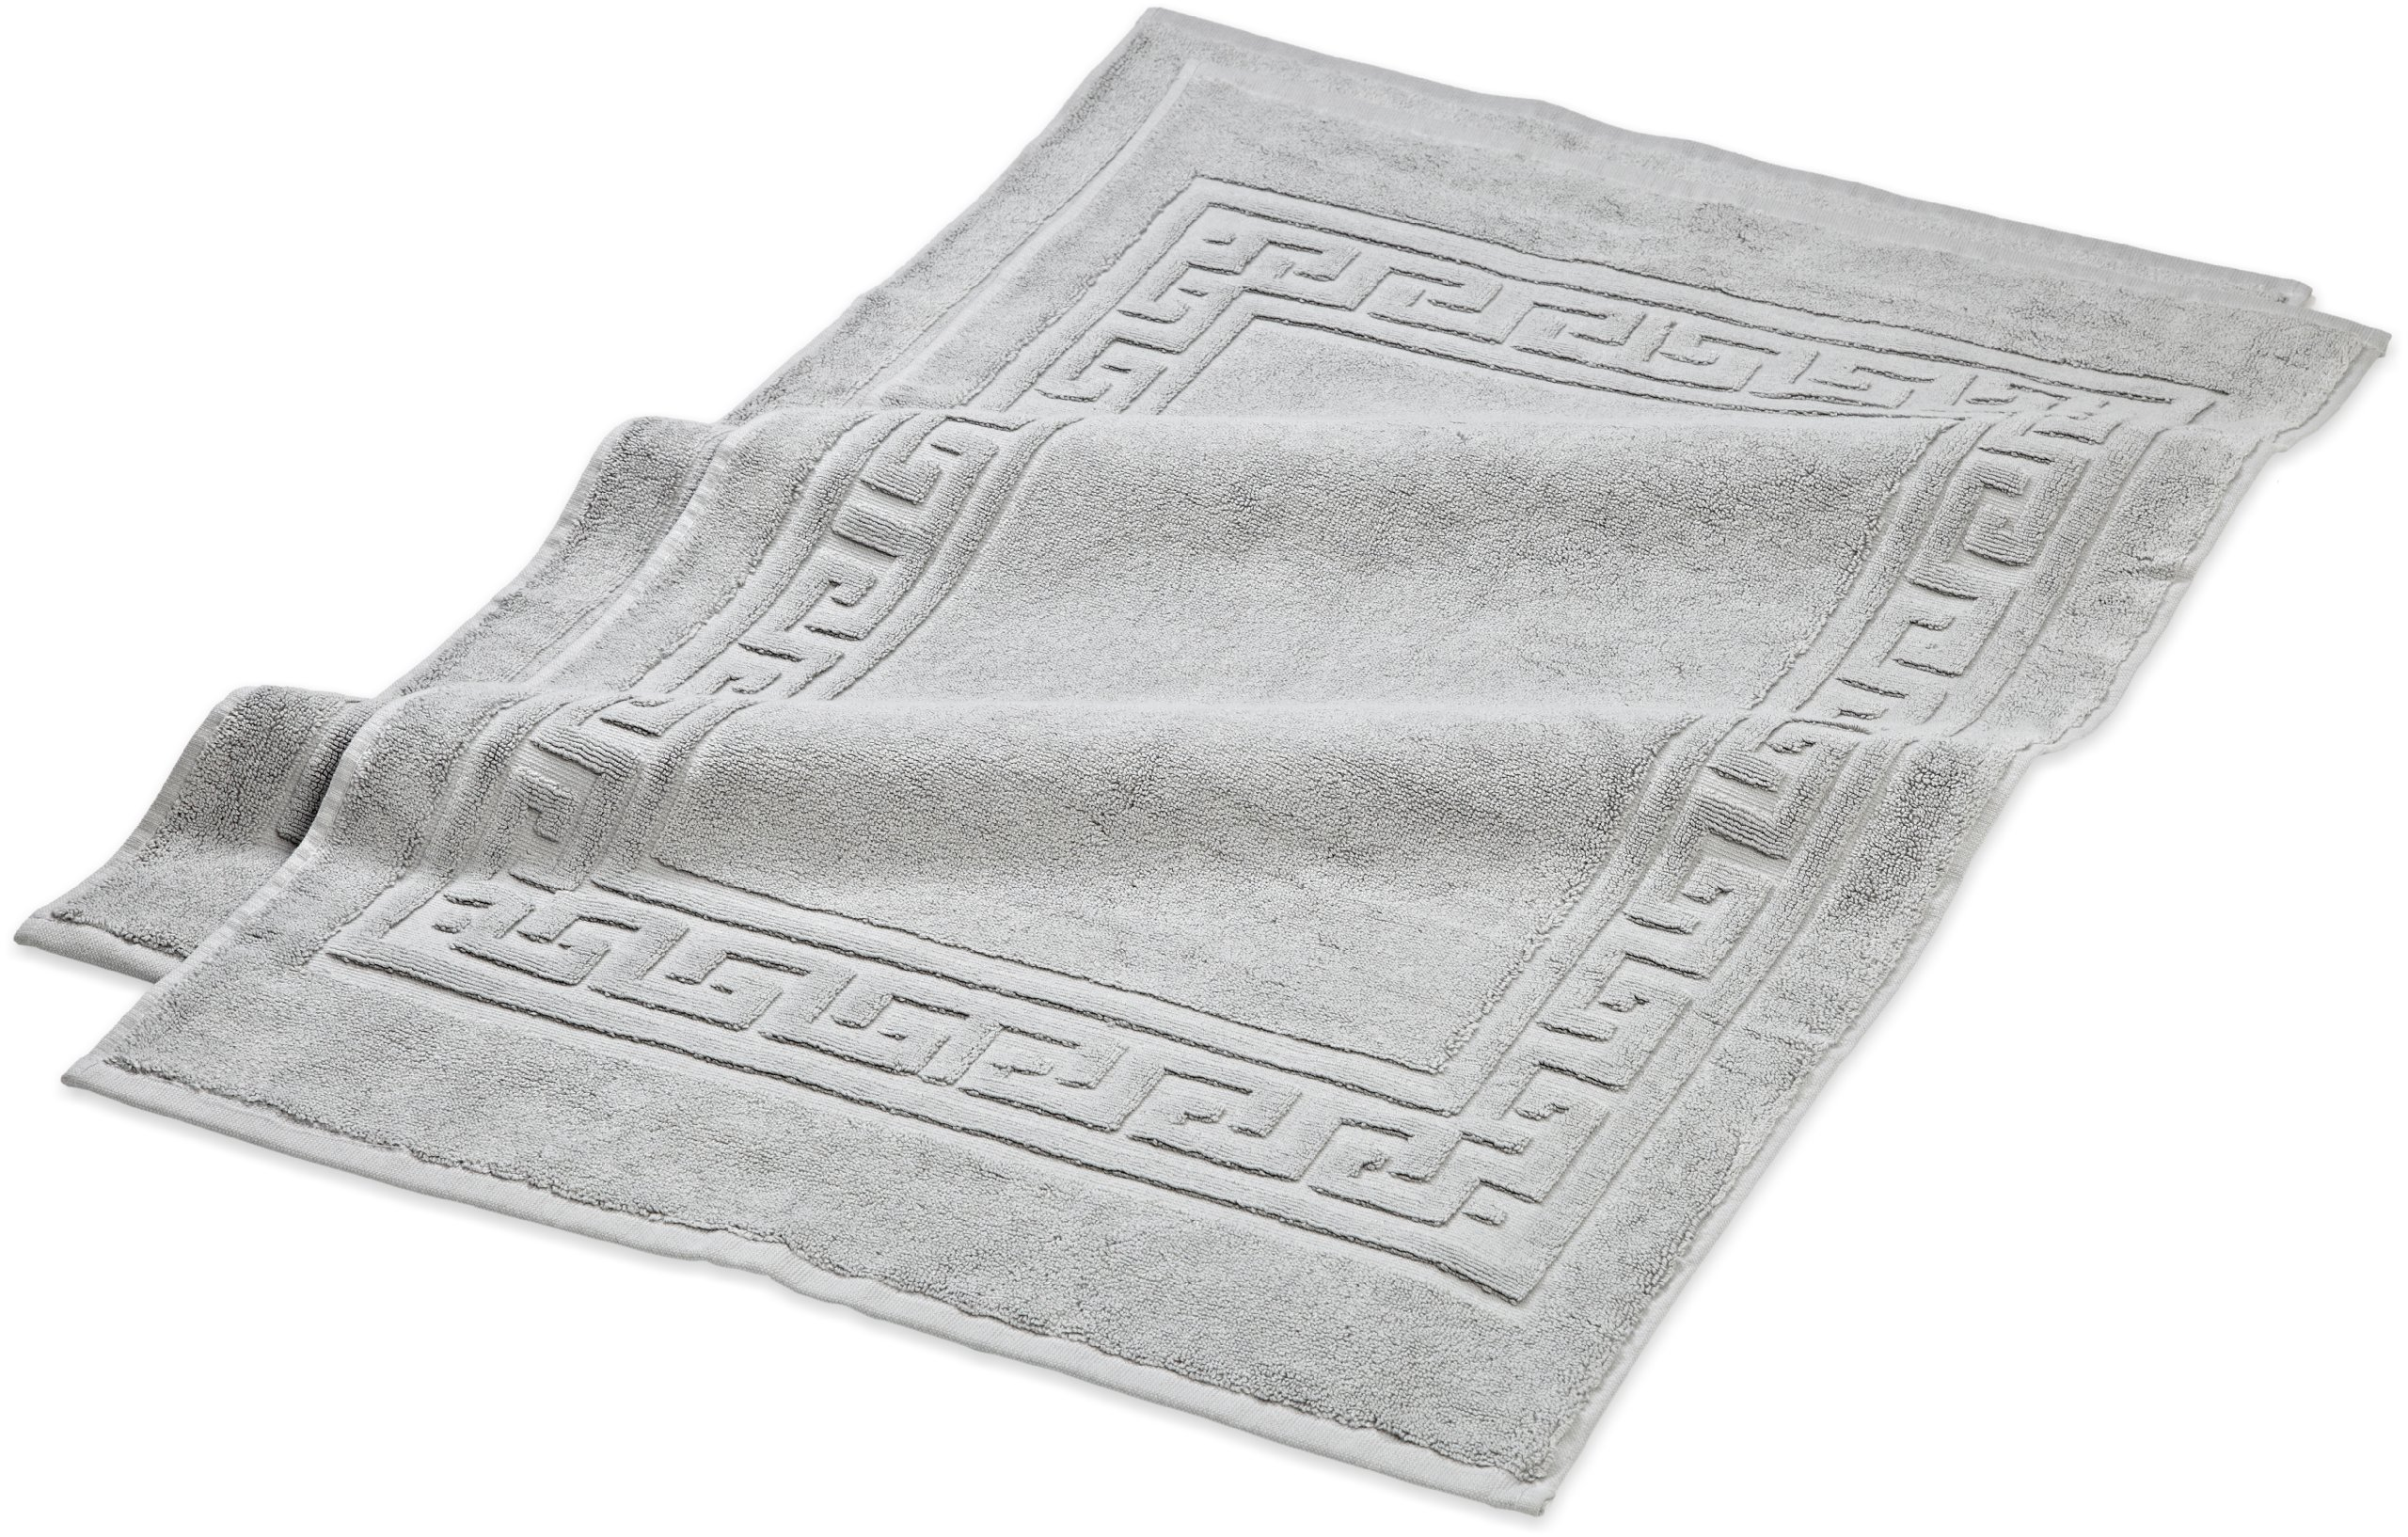 Superior Hotel & Spa Quality Bath Mat Set of 2, Made of 100% Premium Long-Staple Combed Cotton, Durable and Washable Bathroom Mat 2-Pack - Silver, 22'' x 35'' each by Superior